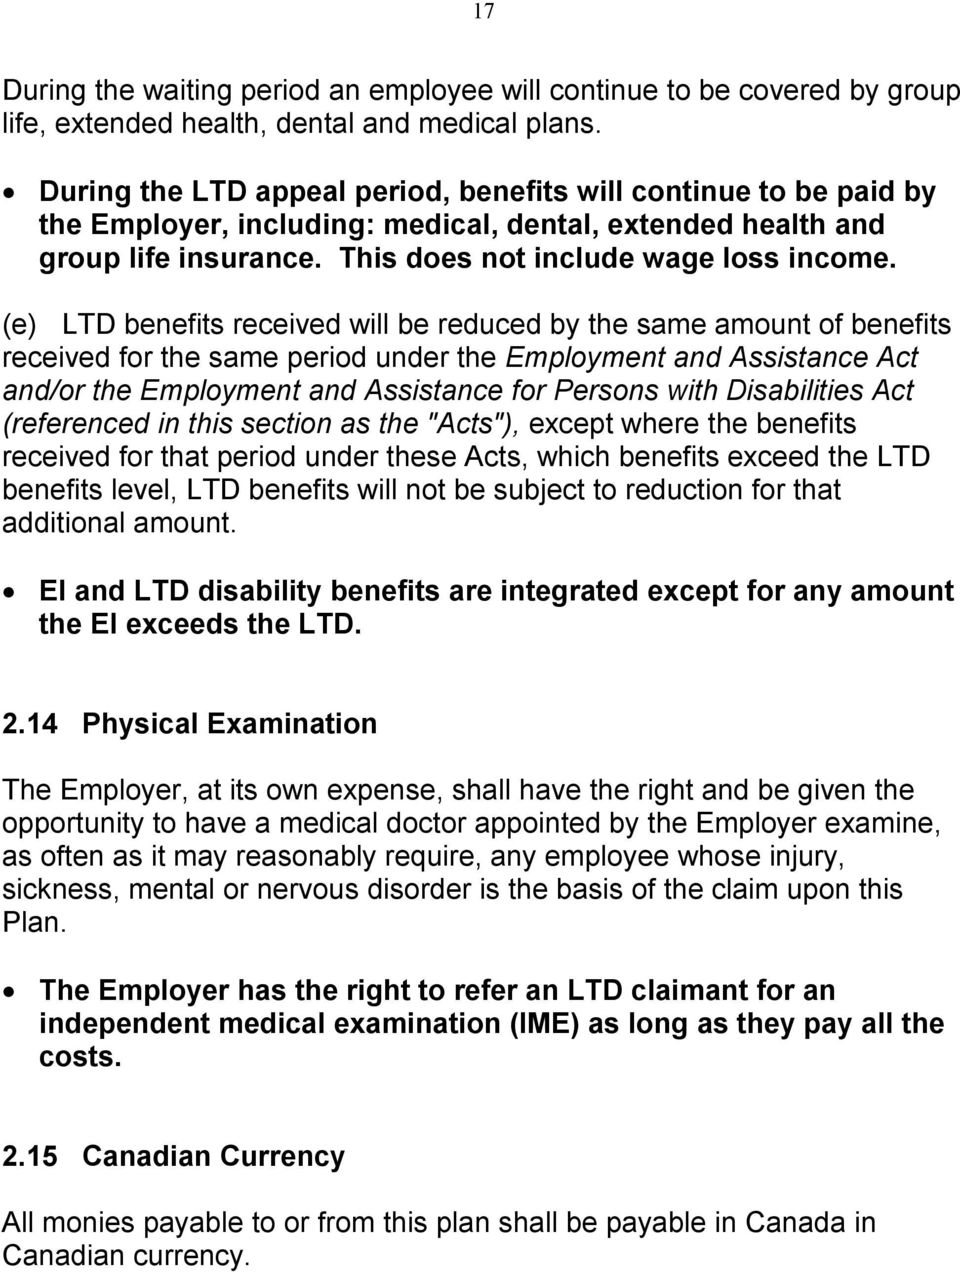 (e) LTD benefits received will be reduced by the same amount of benefits received for the same period under the Employment and Assistance Act and/or the Employment and Assistance for Persons with